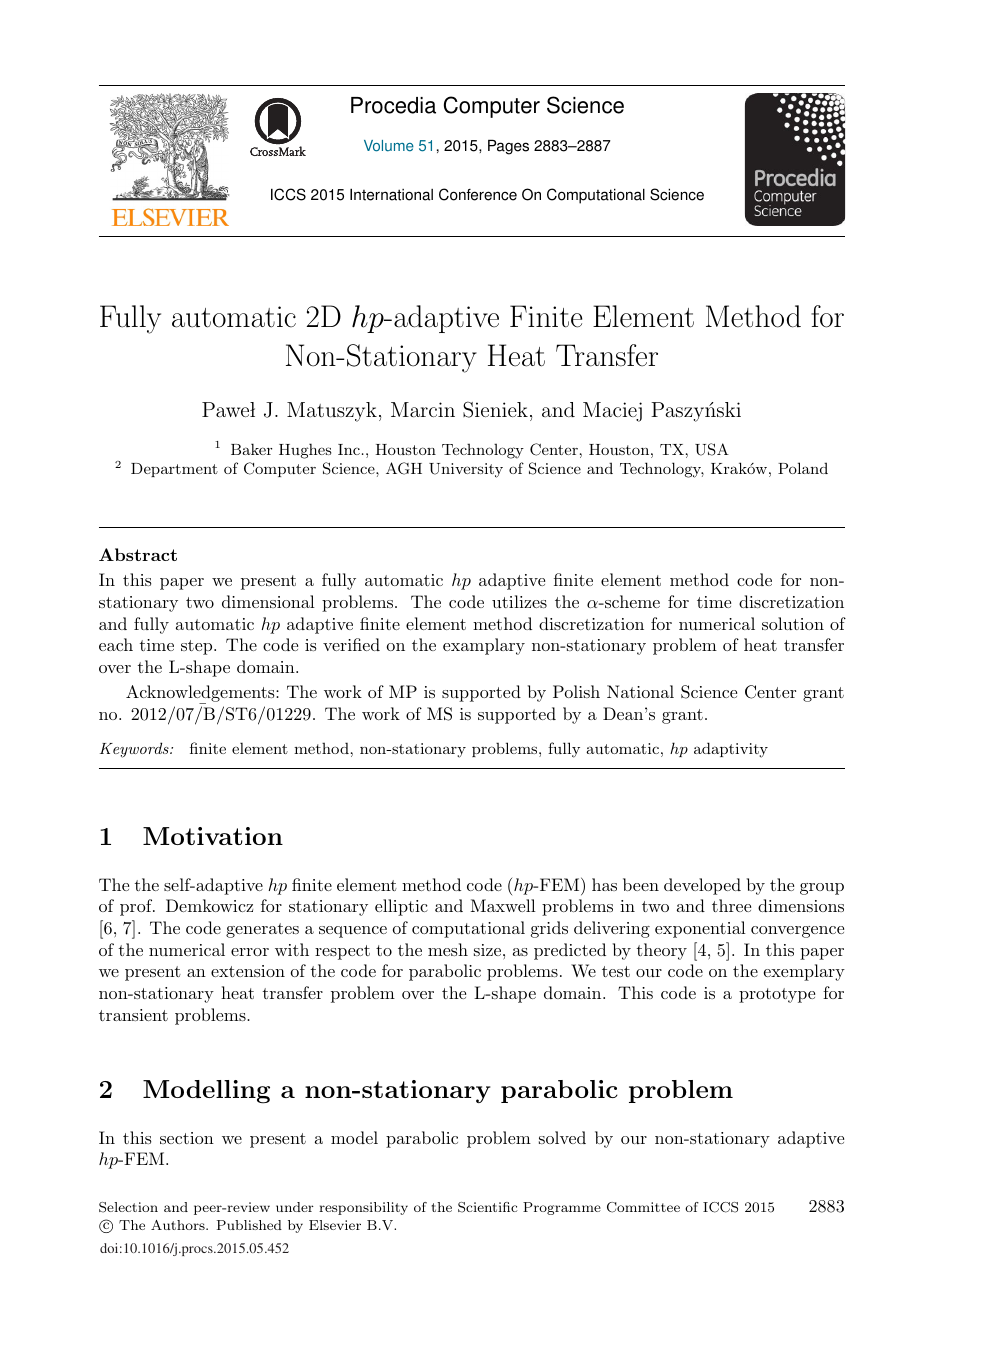 Fully Automatic 2D hp-adaptive Finite Element Method for Non